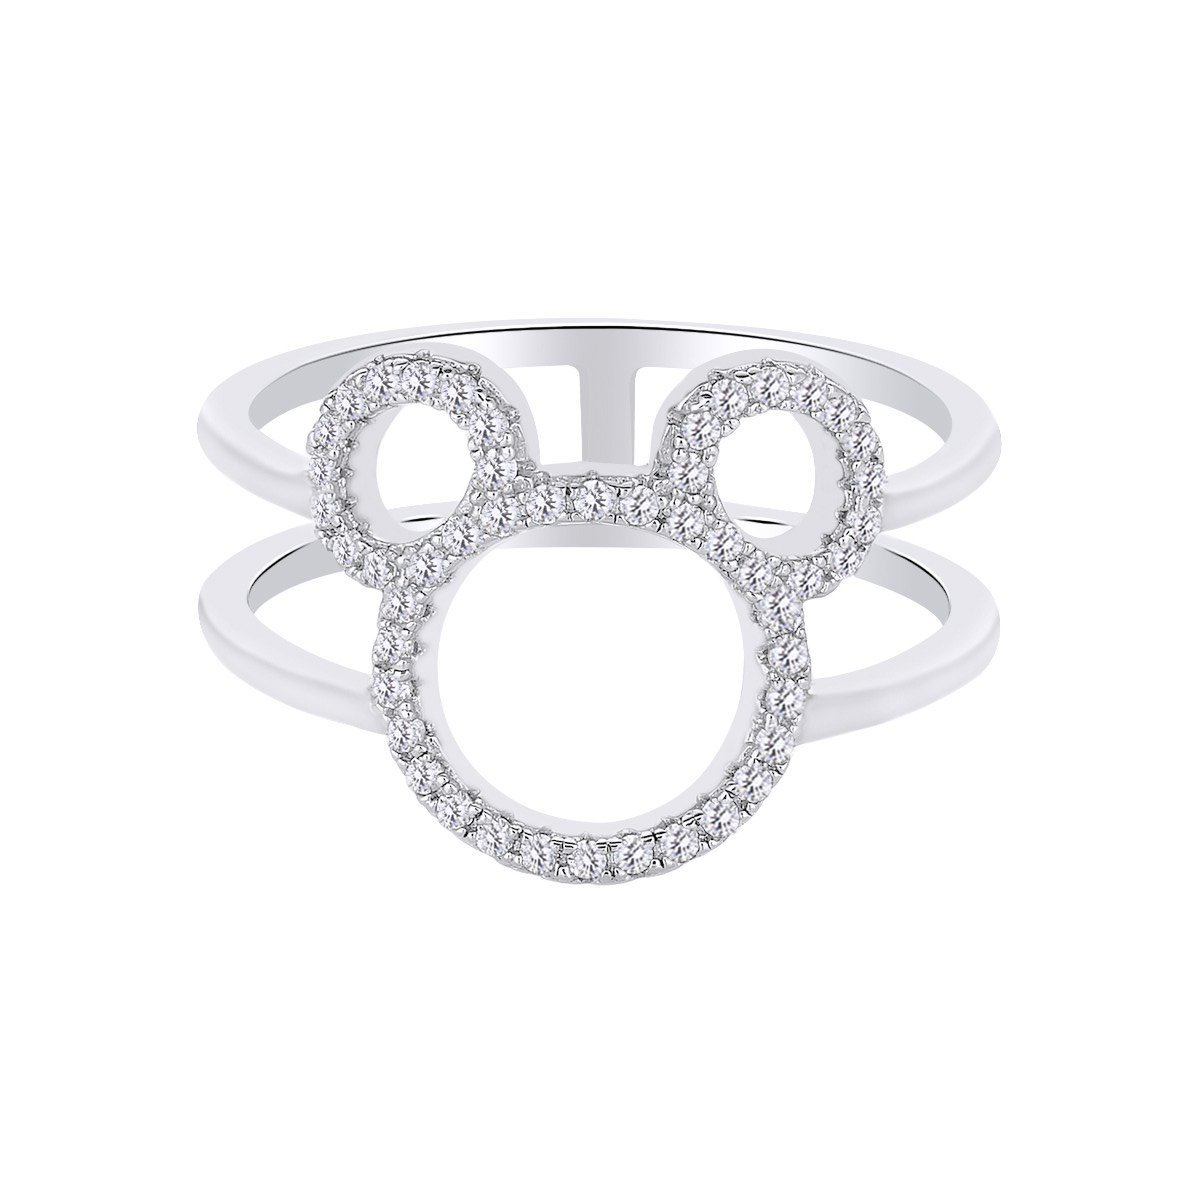 Stunning Round Shape White CZ Mickey Mouse Open Ring In 14K White Gold Over Sterling Silver, Ring Size:7